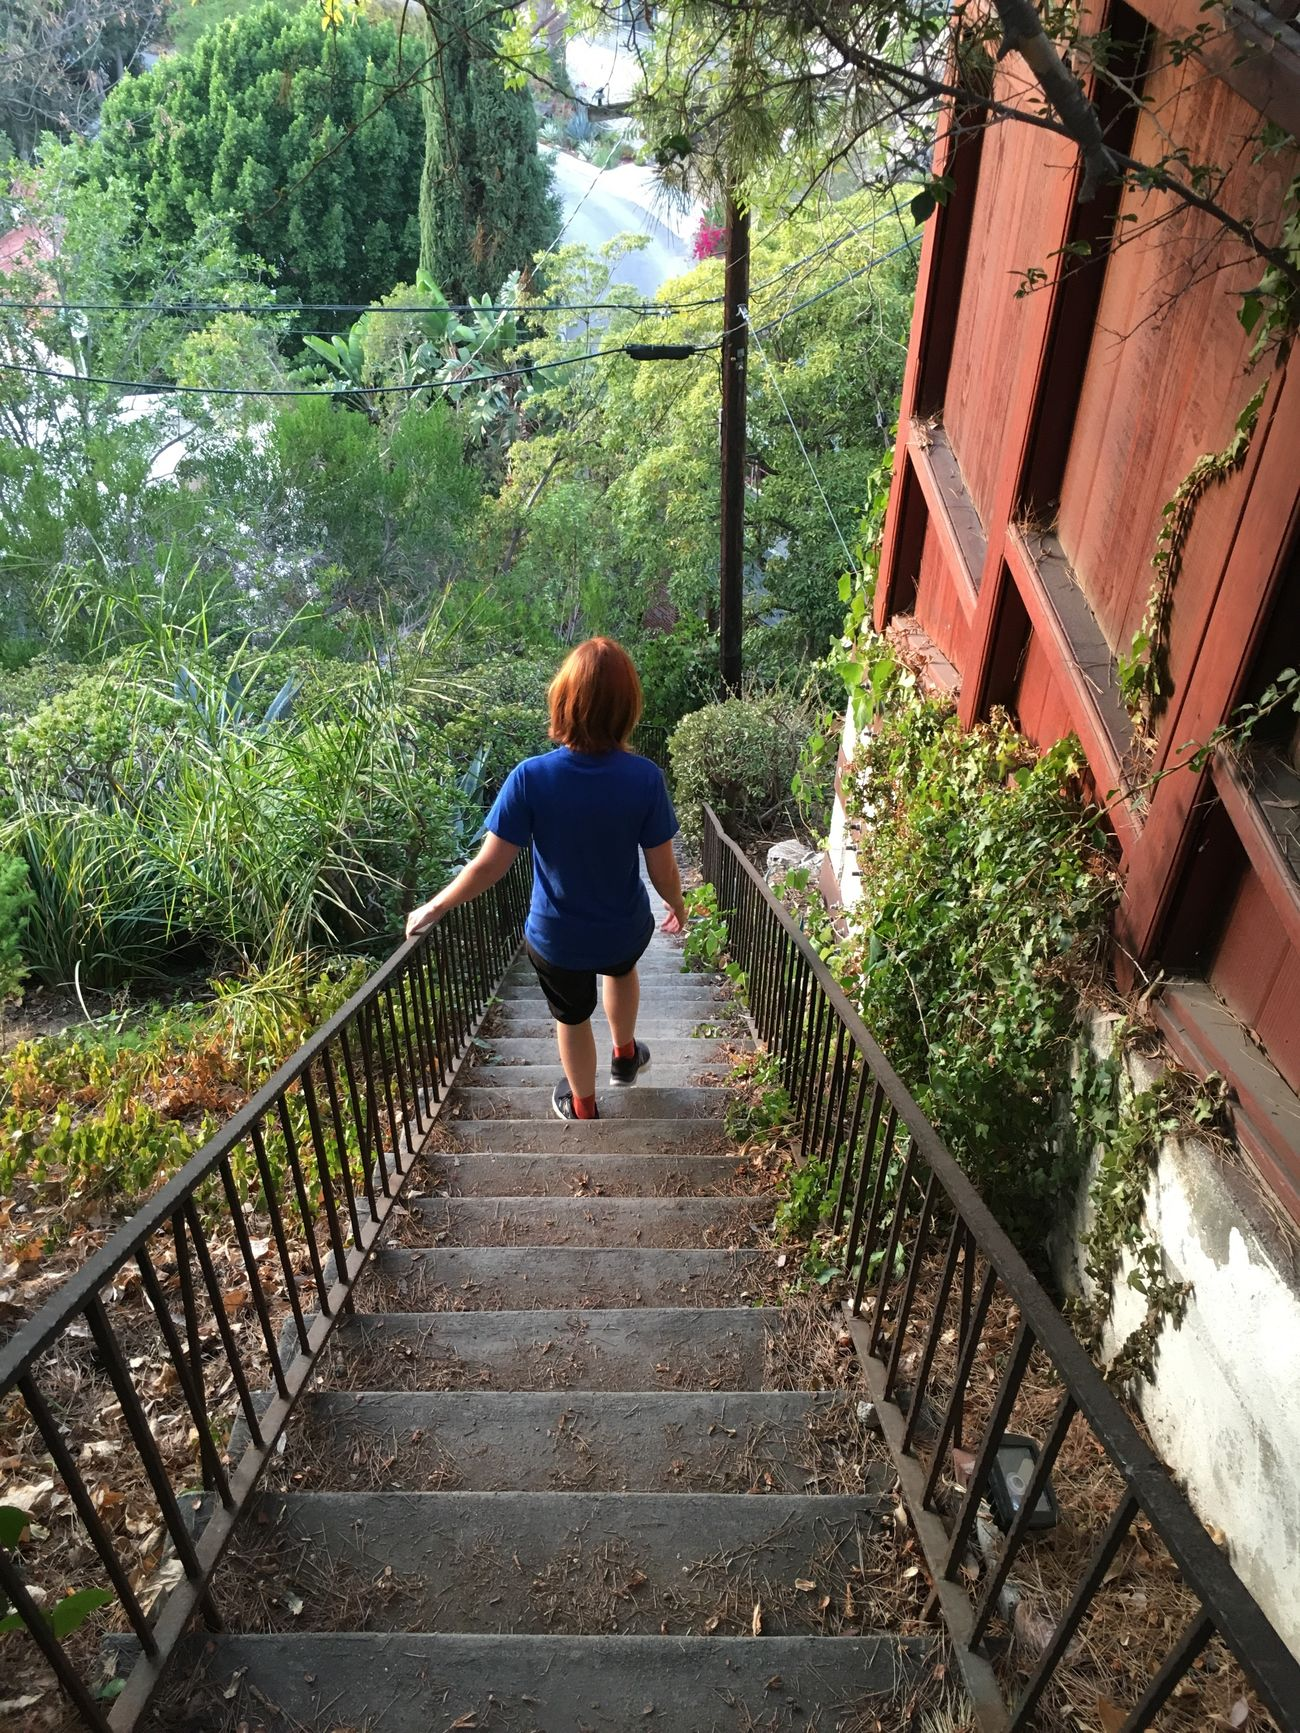 Canyon Stairs Staircase Steps Descent Cliff Hill Verdant Plants Nature Walking Hike The Way Forward One Person Outdoors Steps And Staircases Real People Nature Day Full Length Rear View